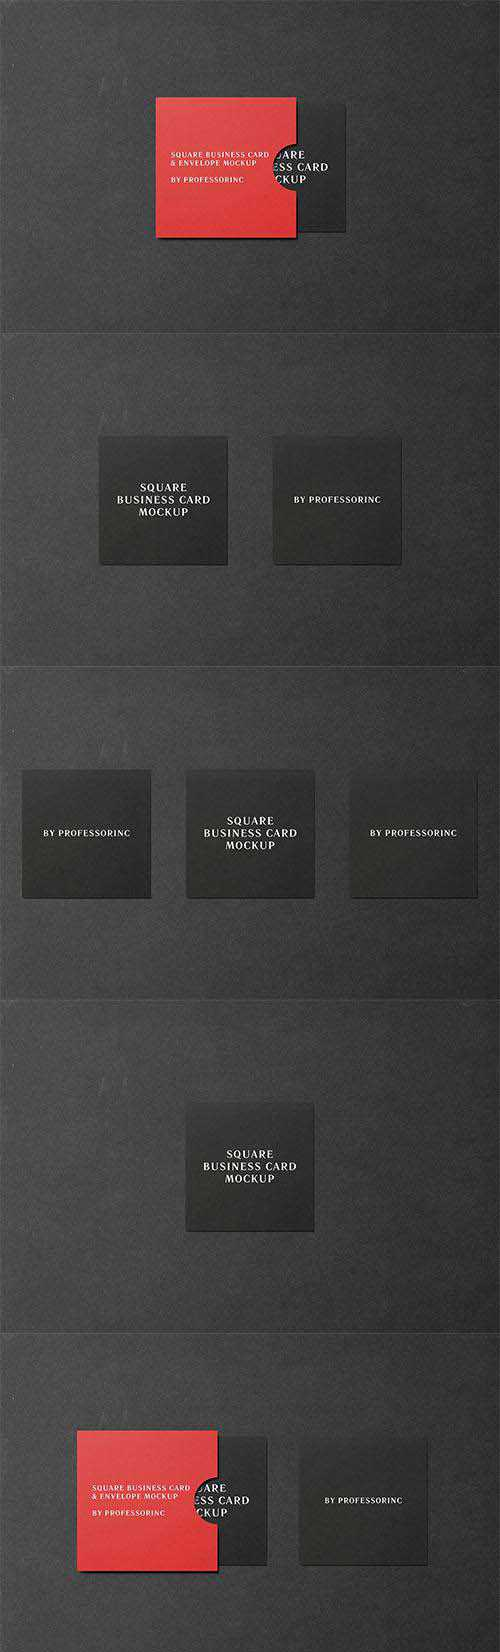 PSD Square Business Card Mockup - Black Edition